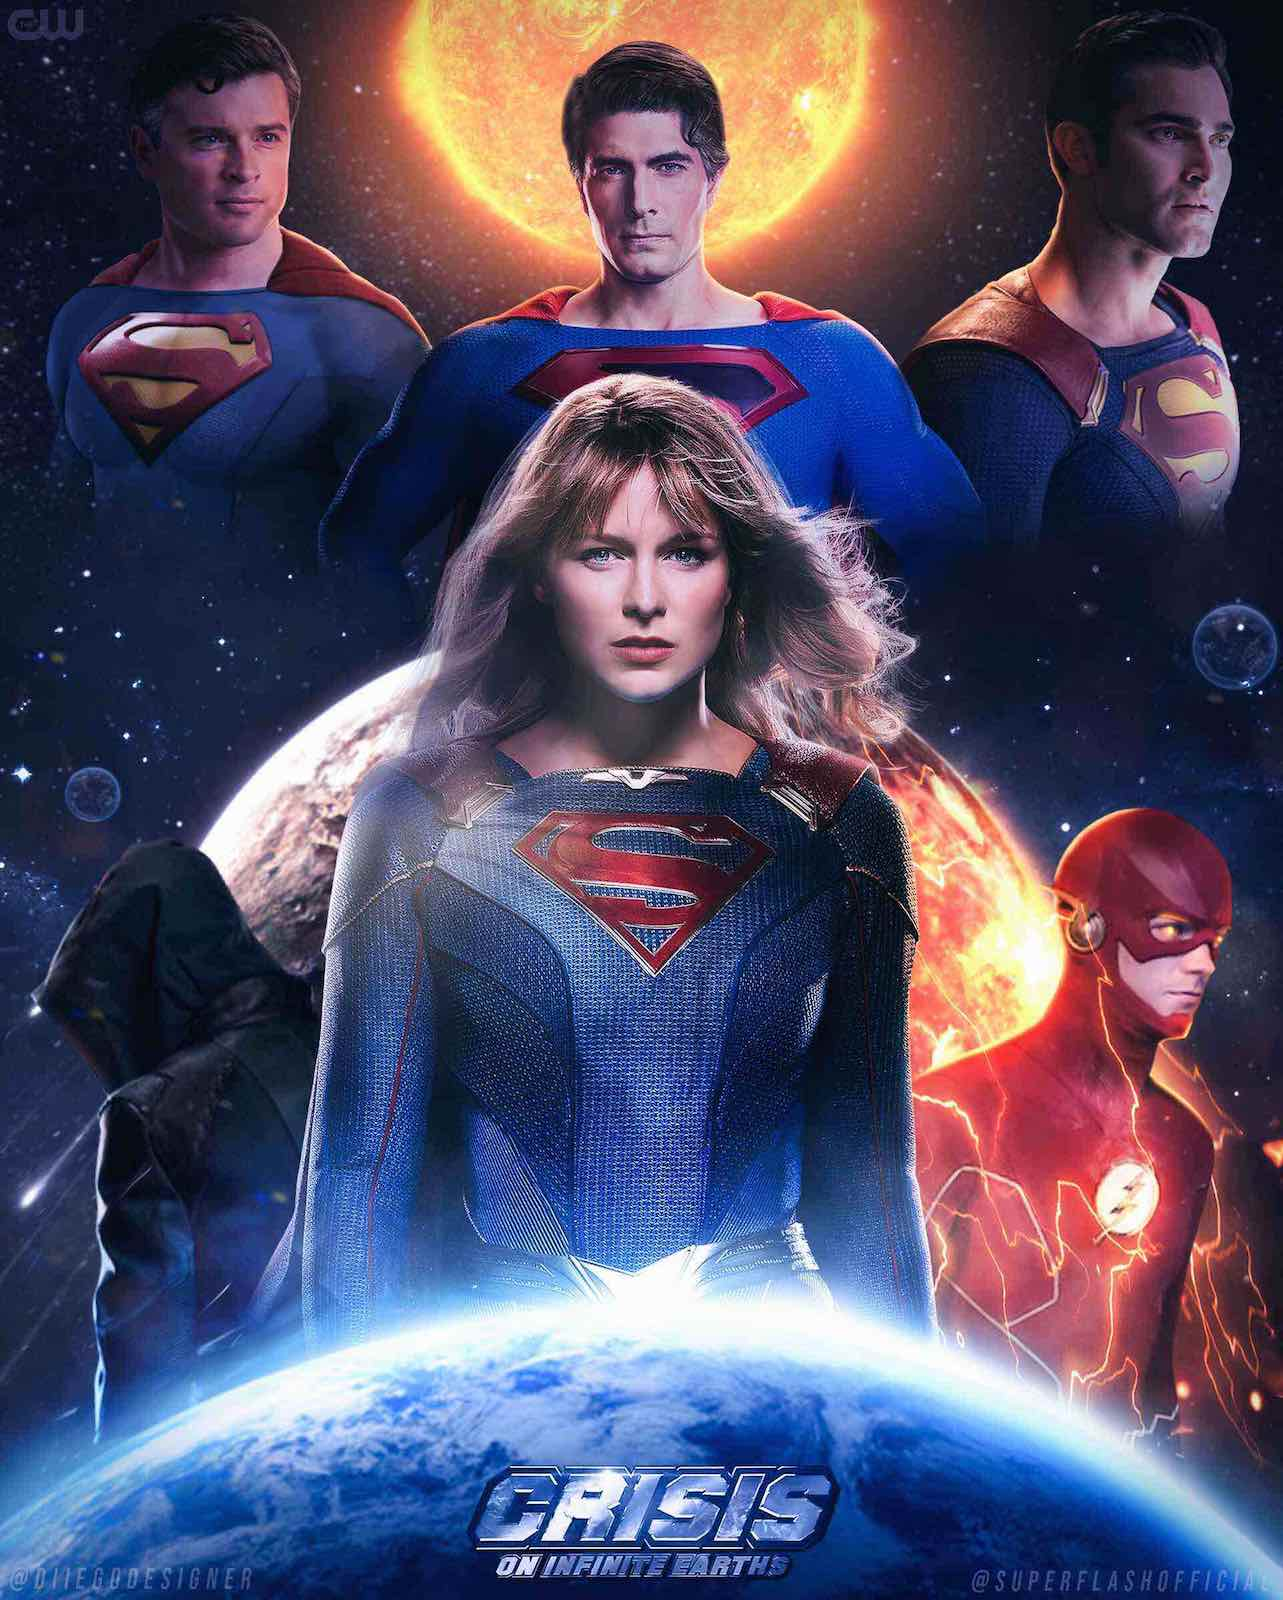 The CW's 'Crisis on Infinite Earths' has had years of buildup, is rooted in a rich comics tradition, and will feature not one, not two, but three Supermans.